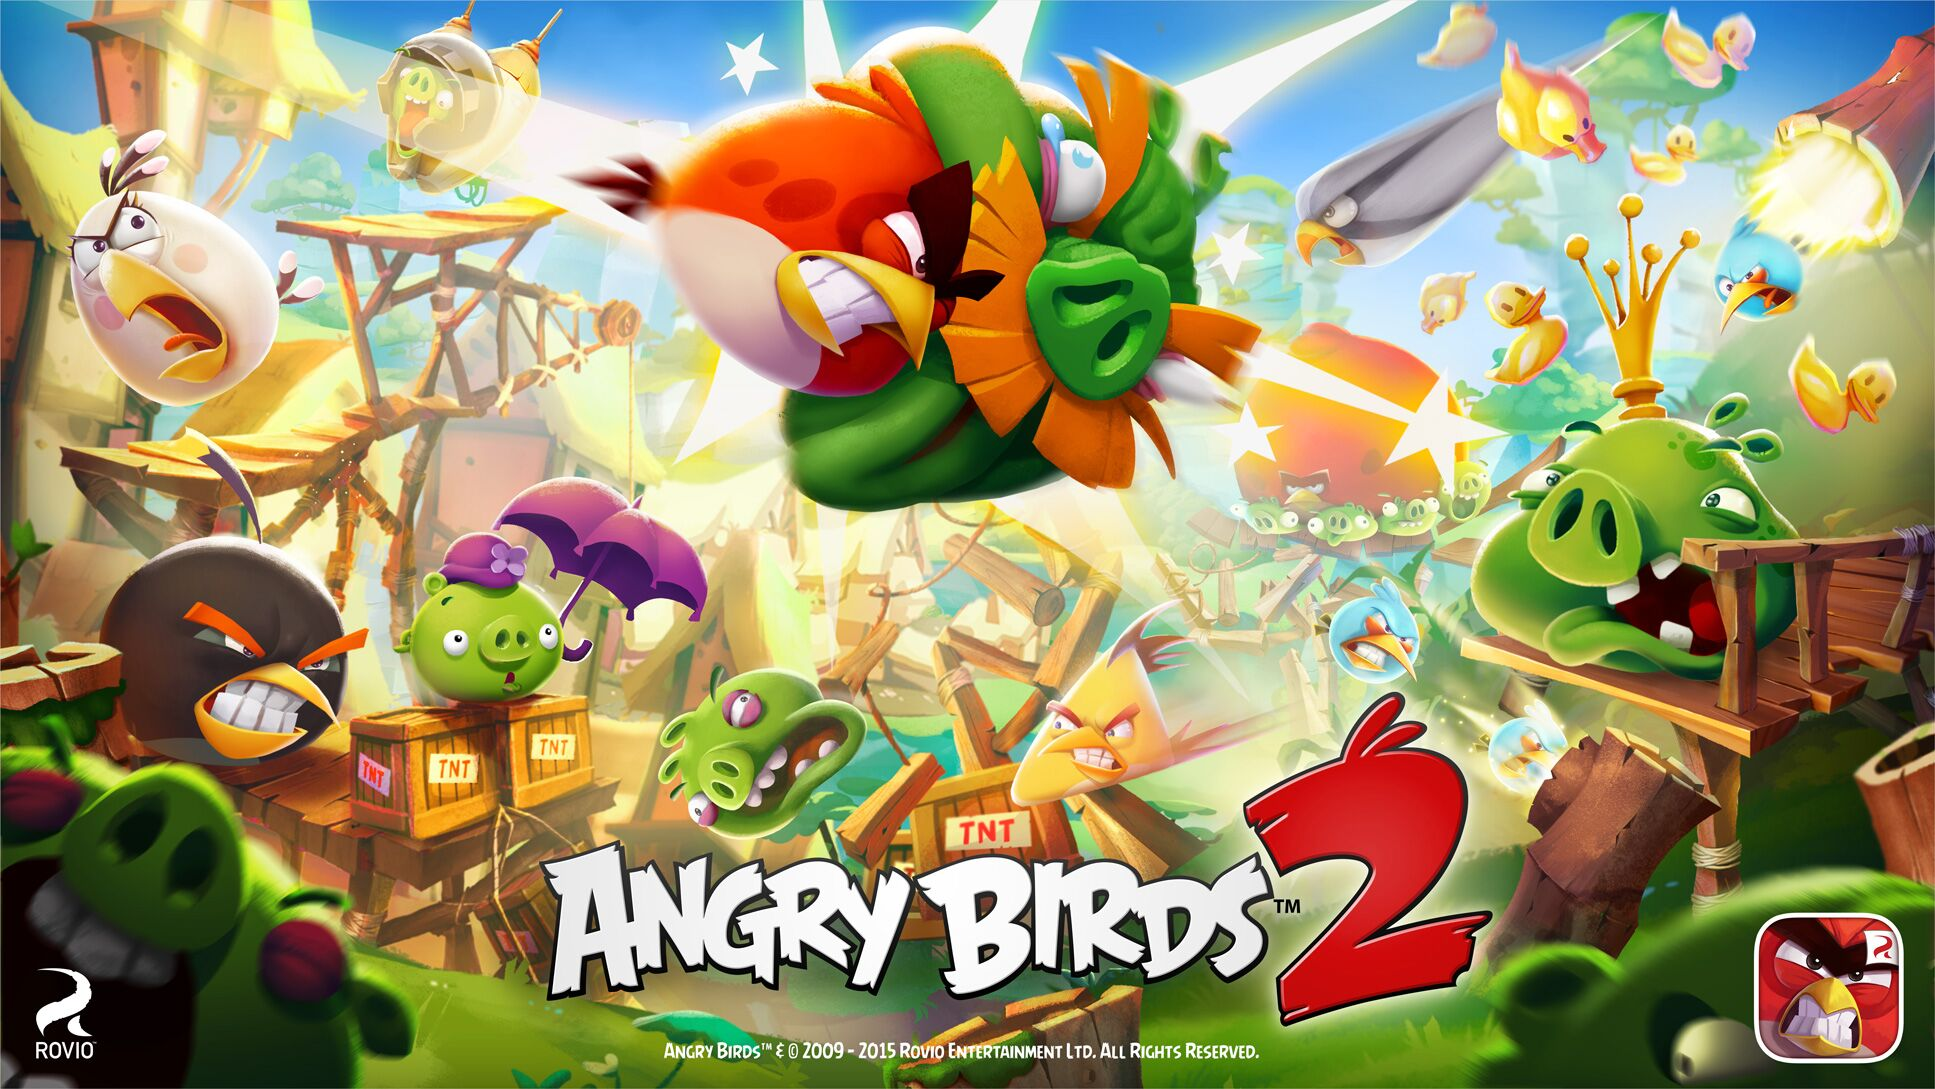 The Sound of Angry Birds 2 – The Audio Spotlight